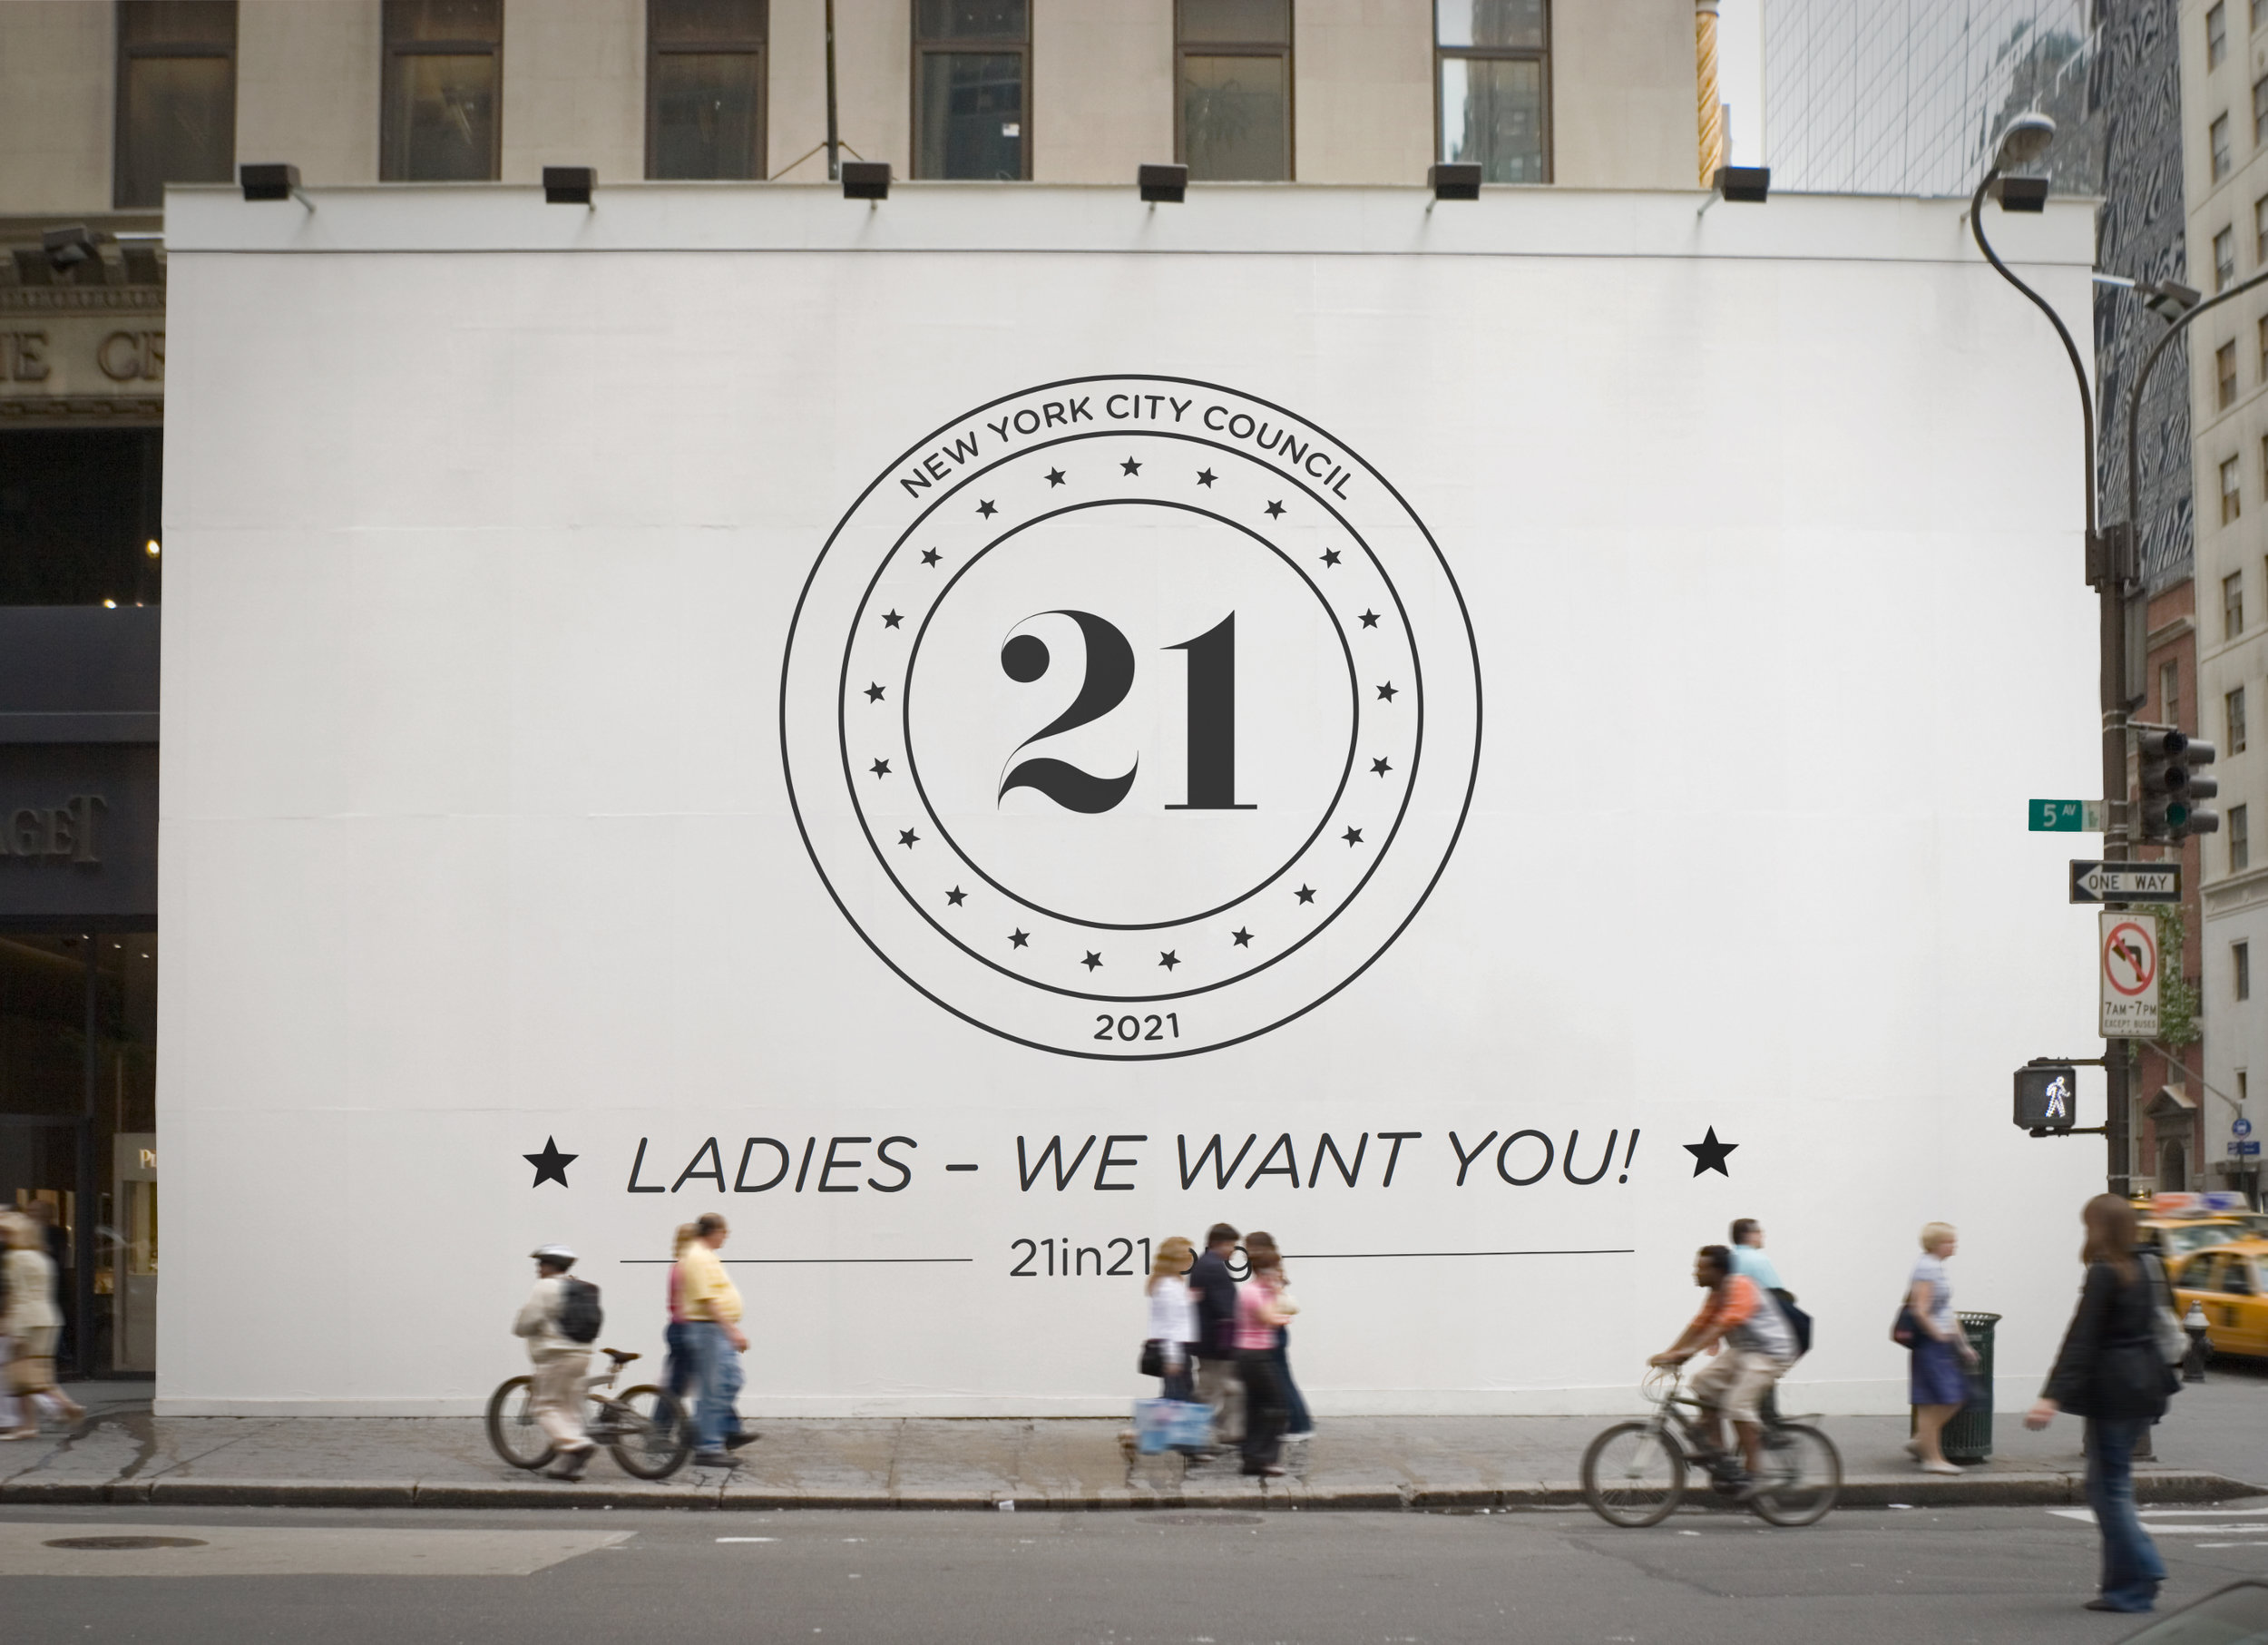 Achieving a gender balanced New york city council by 2021 - While creating a community and pipeline of politically educated women who can beEssentially, reinventing the old